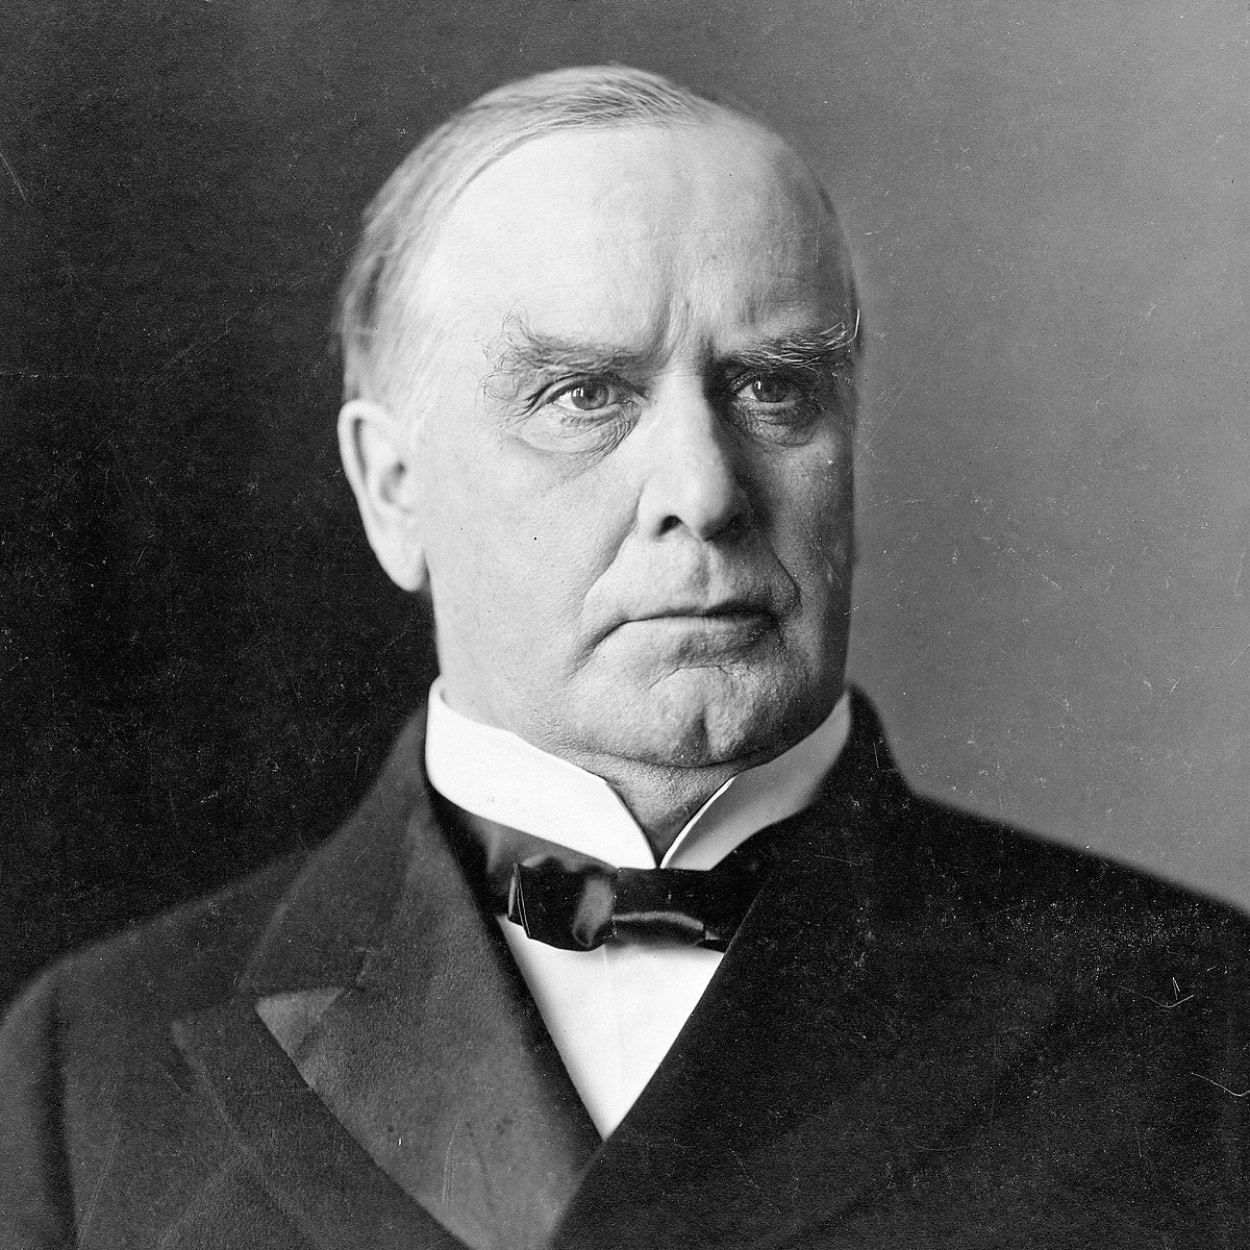 Portrait of William McKinley, the 25th President of the United States